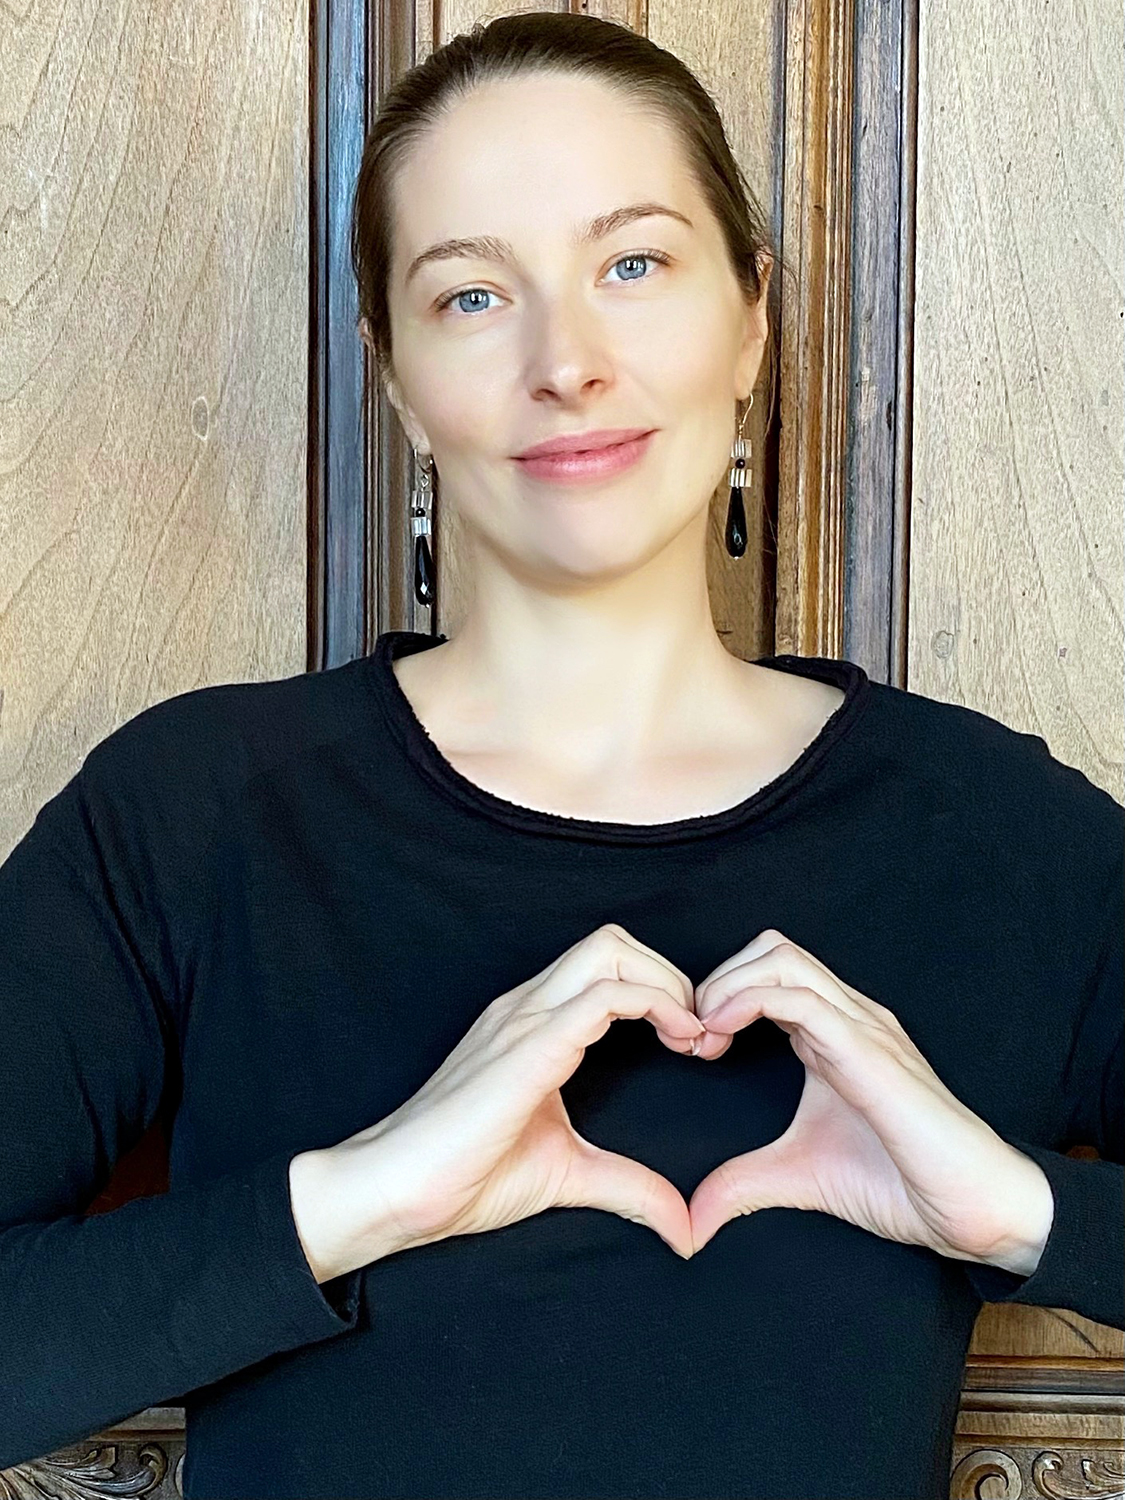 Caterina - Of Love and Yoga